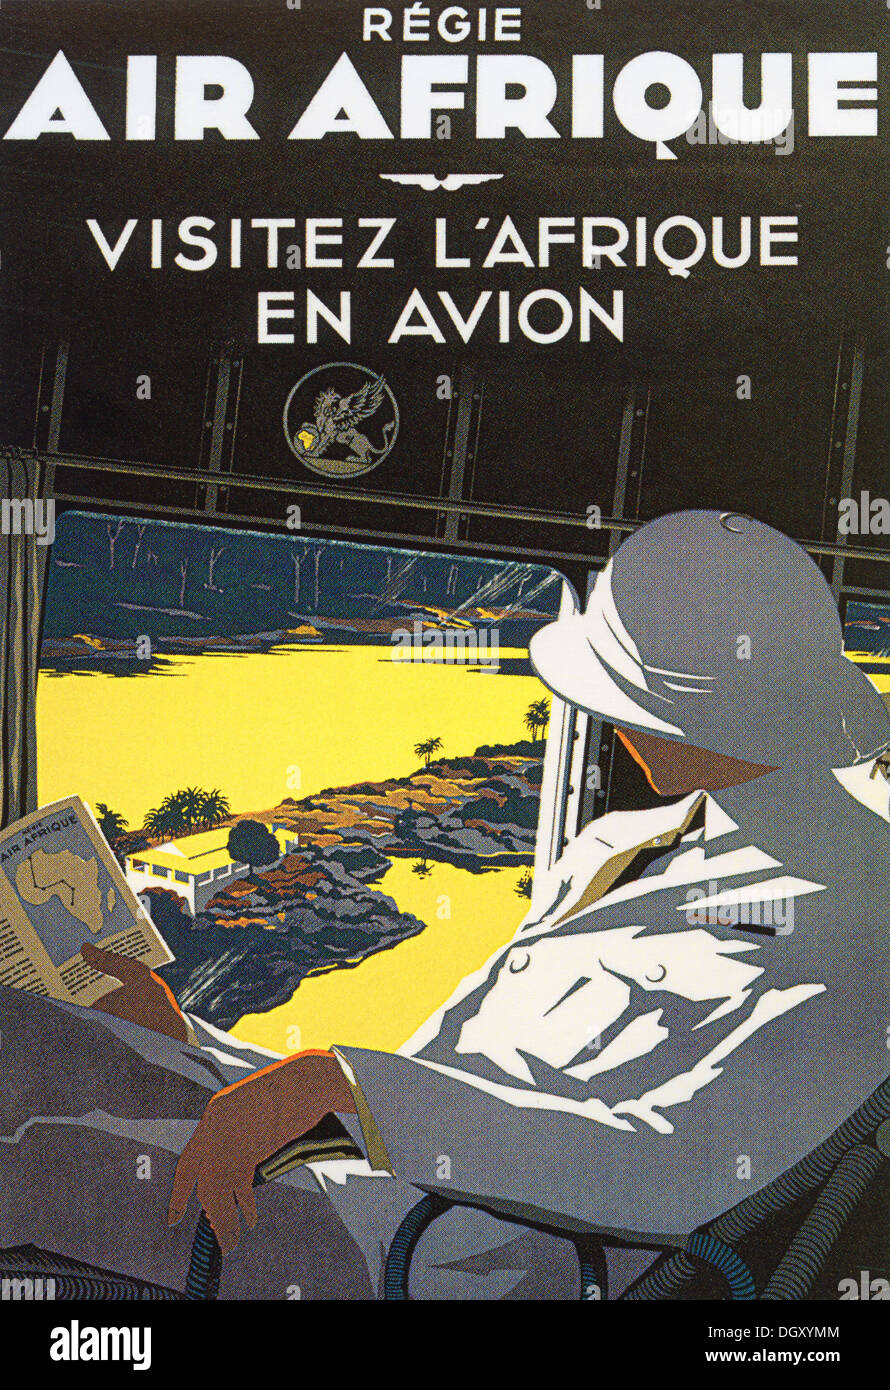 Visit Africa by Air Afrique Airlines ad vintage travel poster, 1936 - Editorial use only. - Stock Image